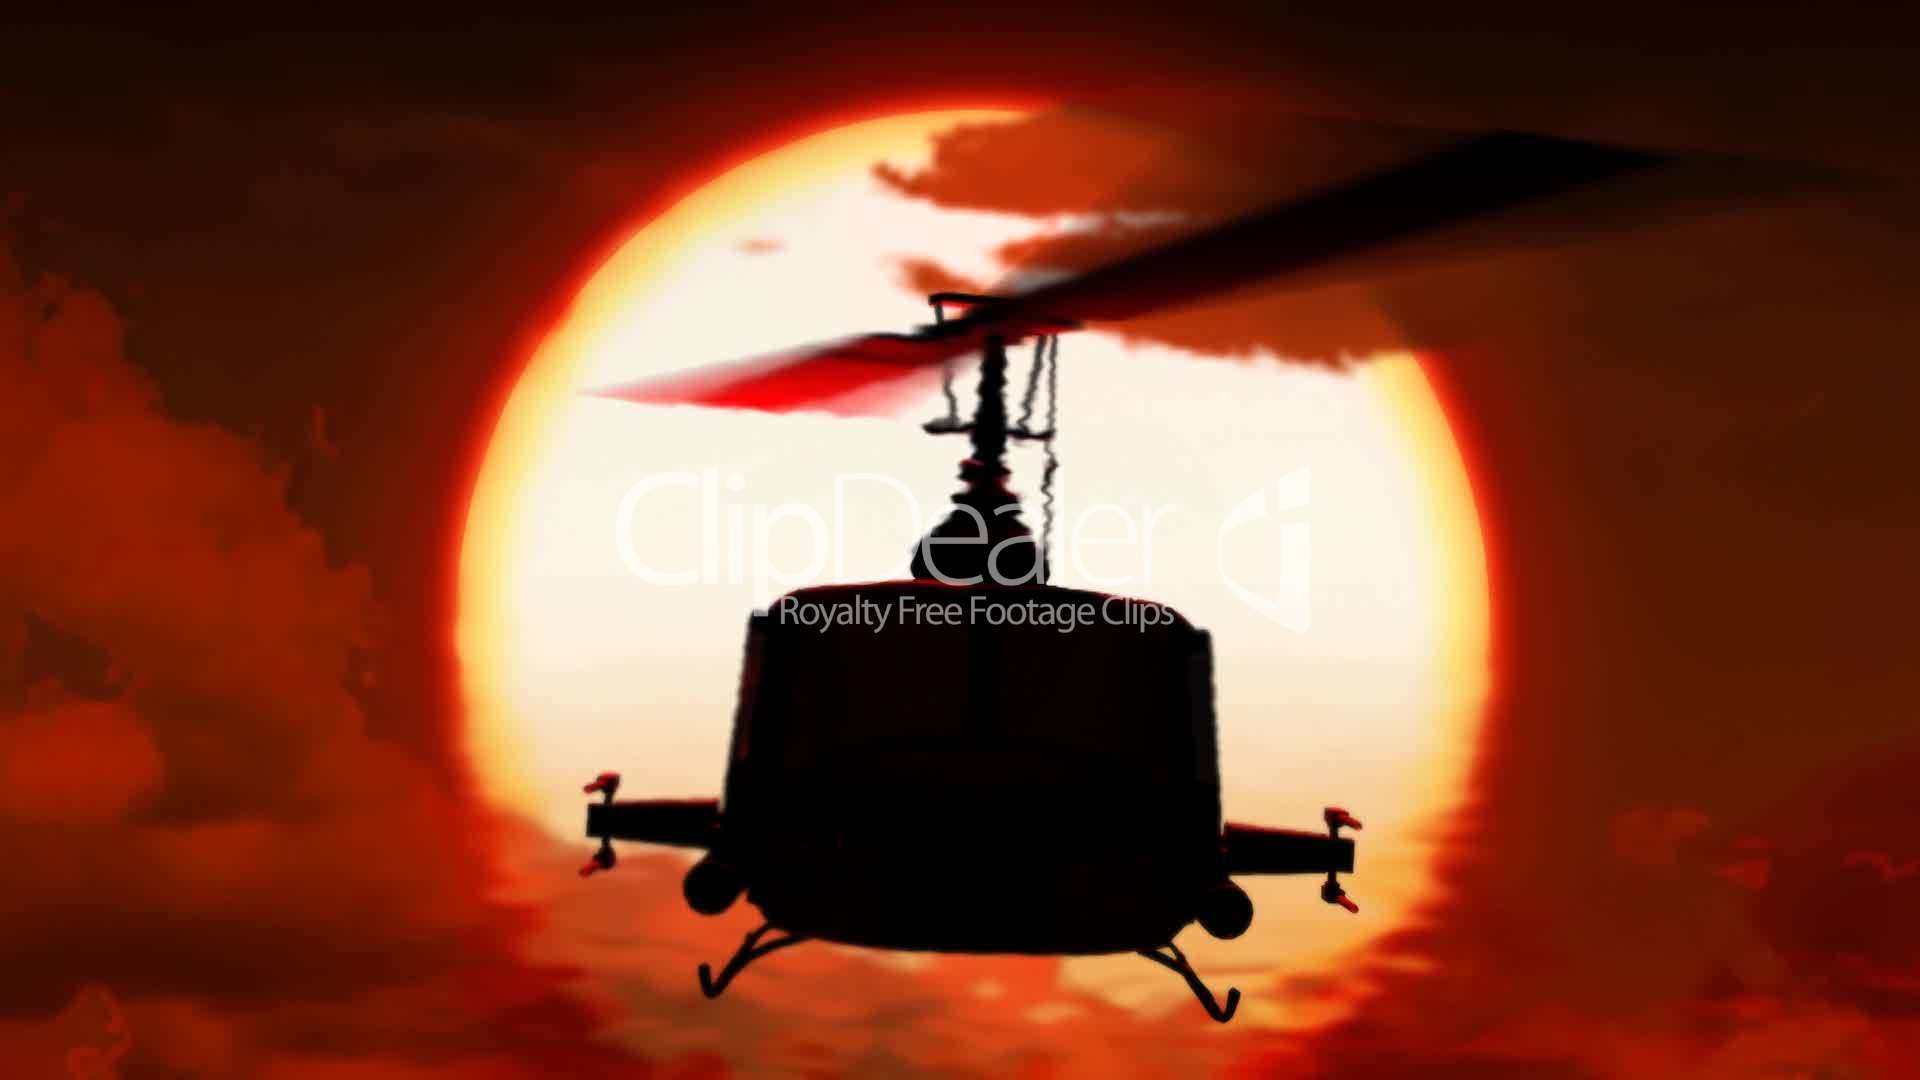 Res: 1920x1080, Huey helicopter: Royalty-free video and stock footage